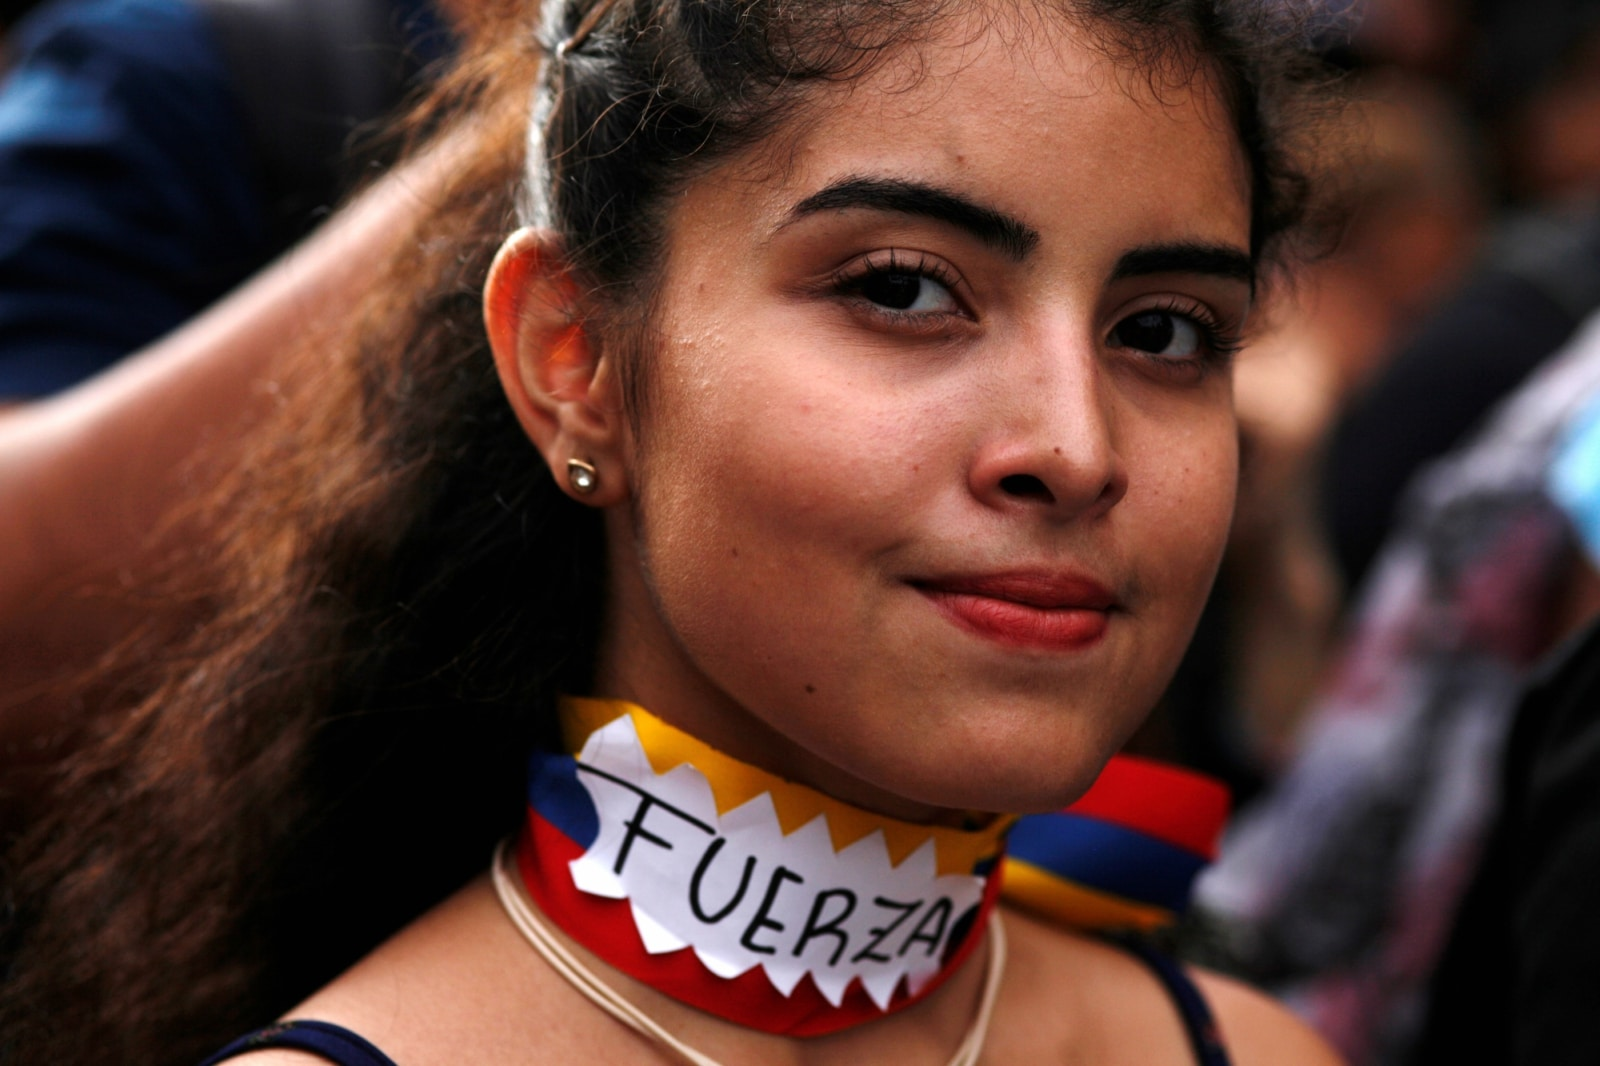 A woman attends a gathering in support of Venezuela's opposition leader Juan Guaido on the Vatican Square in Buenos Aires, Argentina January 23, 2019.The sign reads: